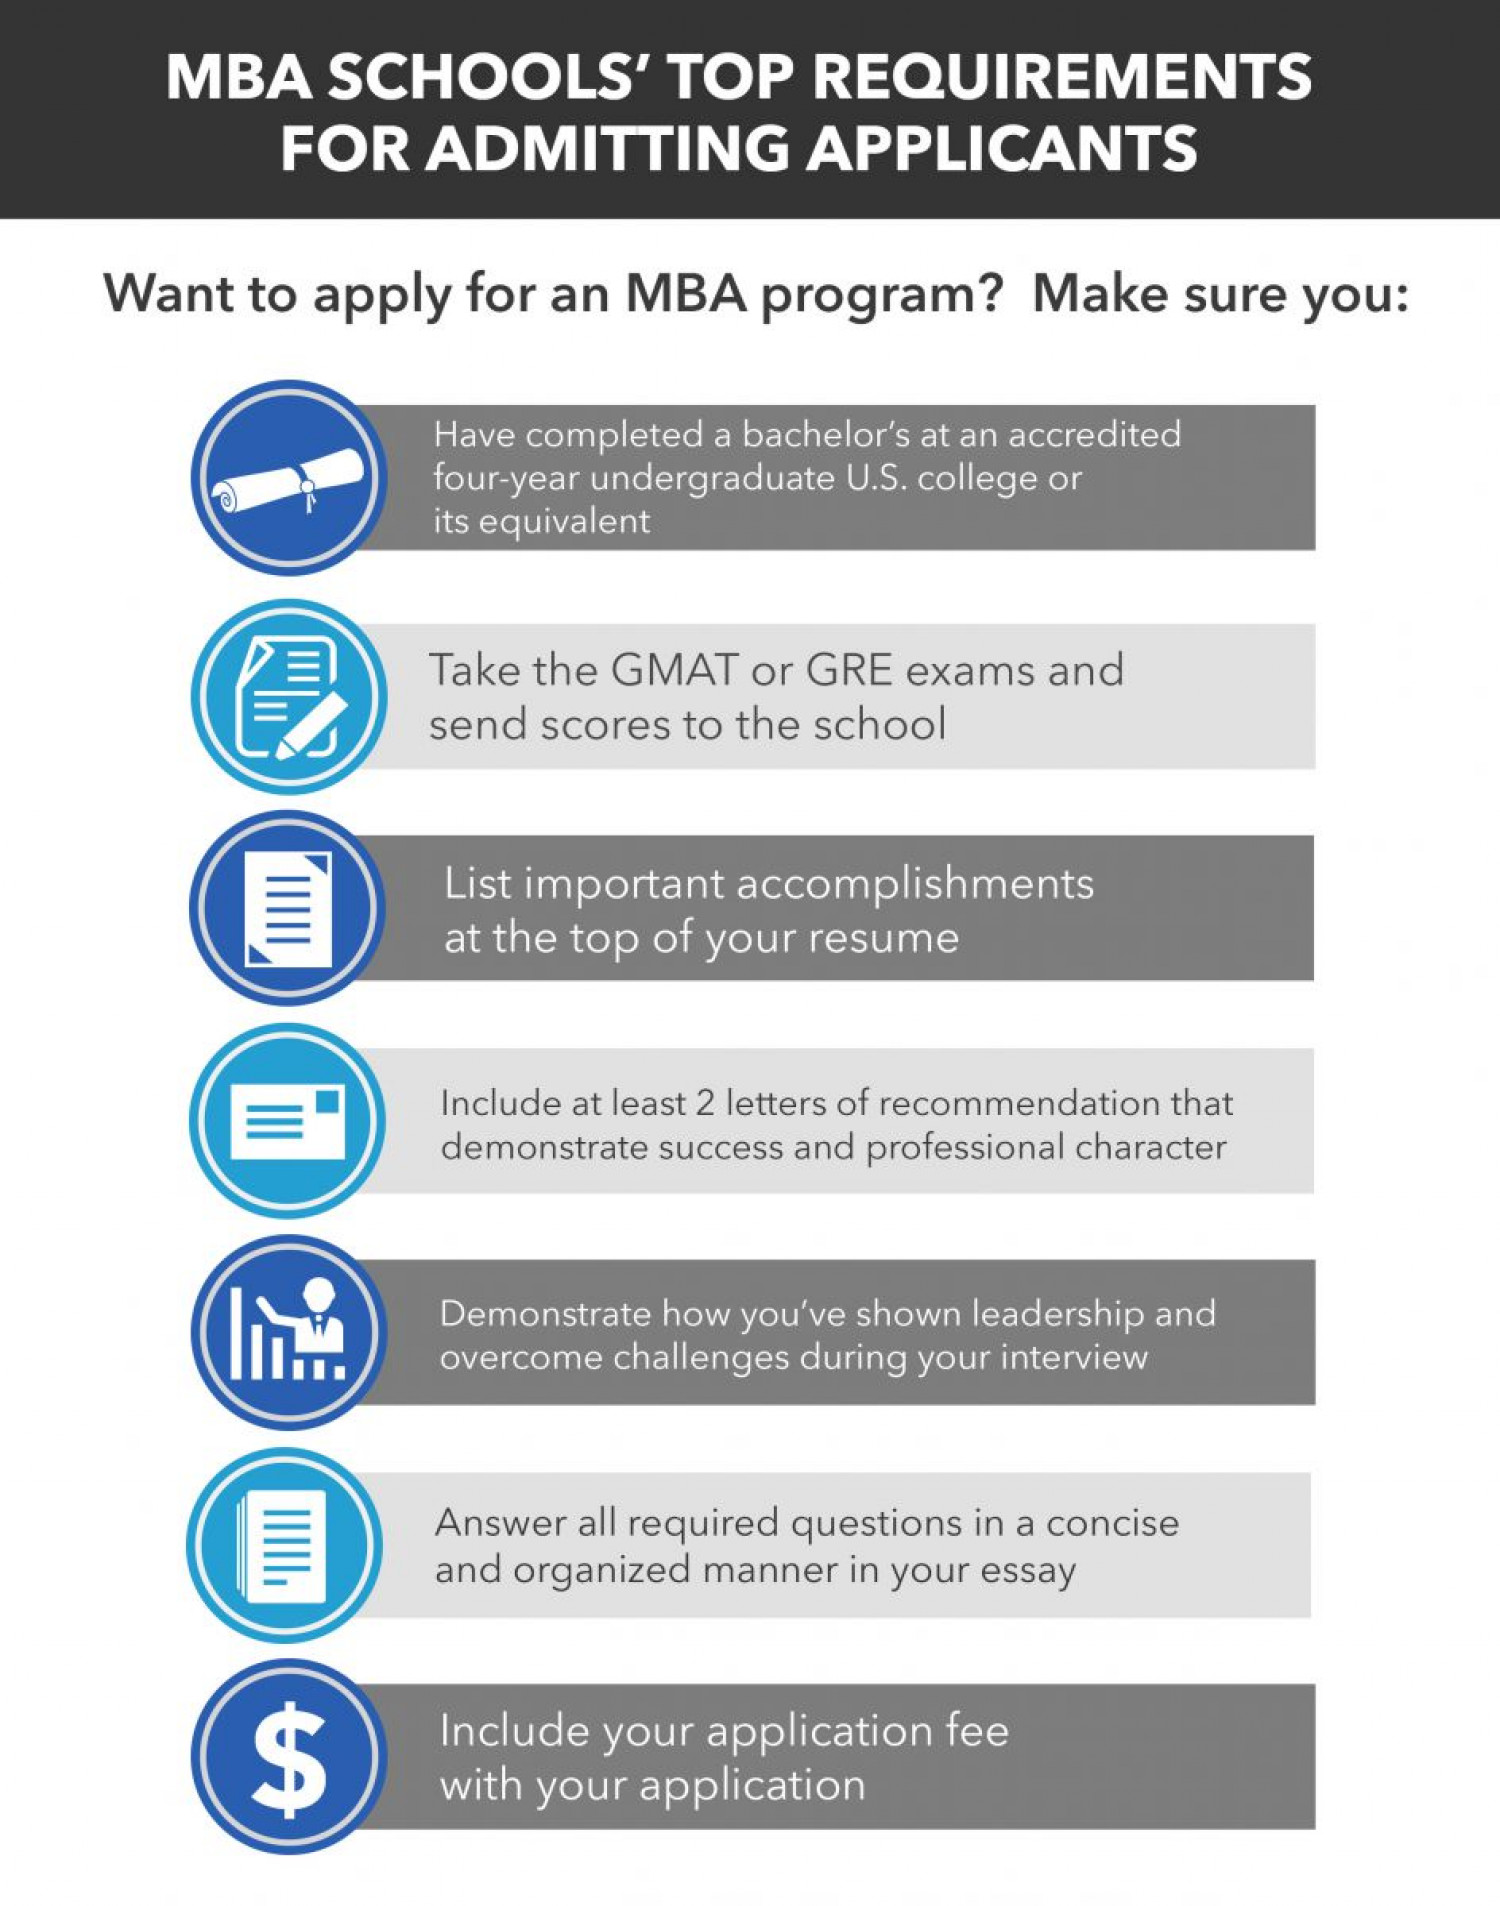 MBA School Requirements Infographic